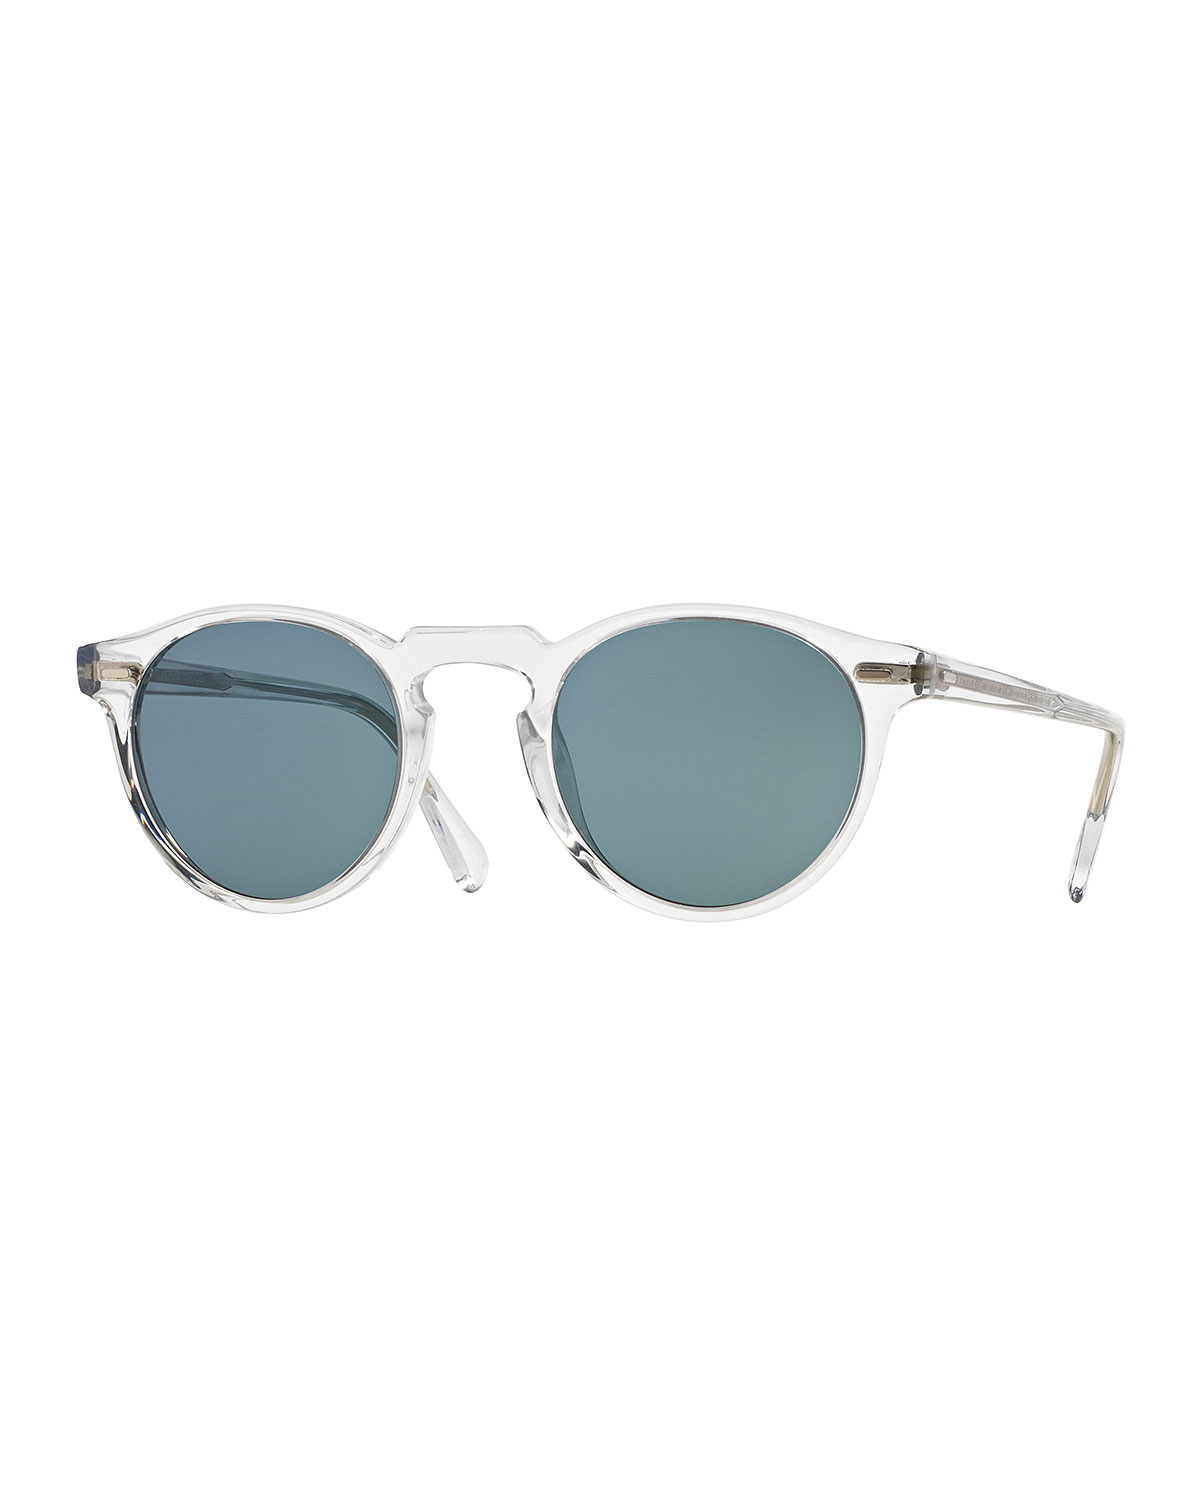 Oliver Peoples Men's Gregory Peck 47 Round Sunglasses